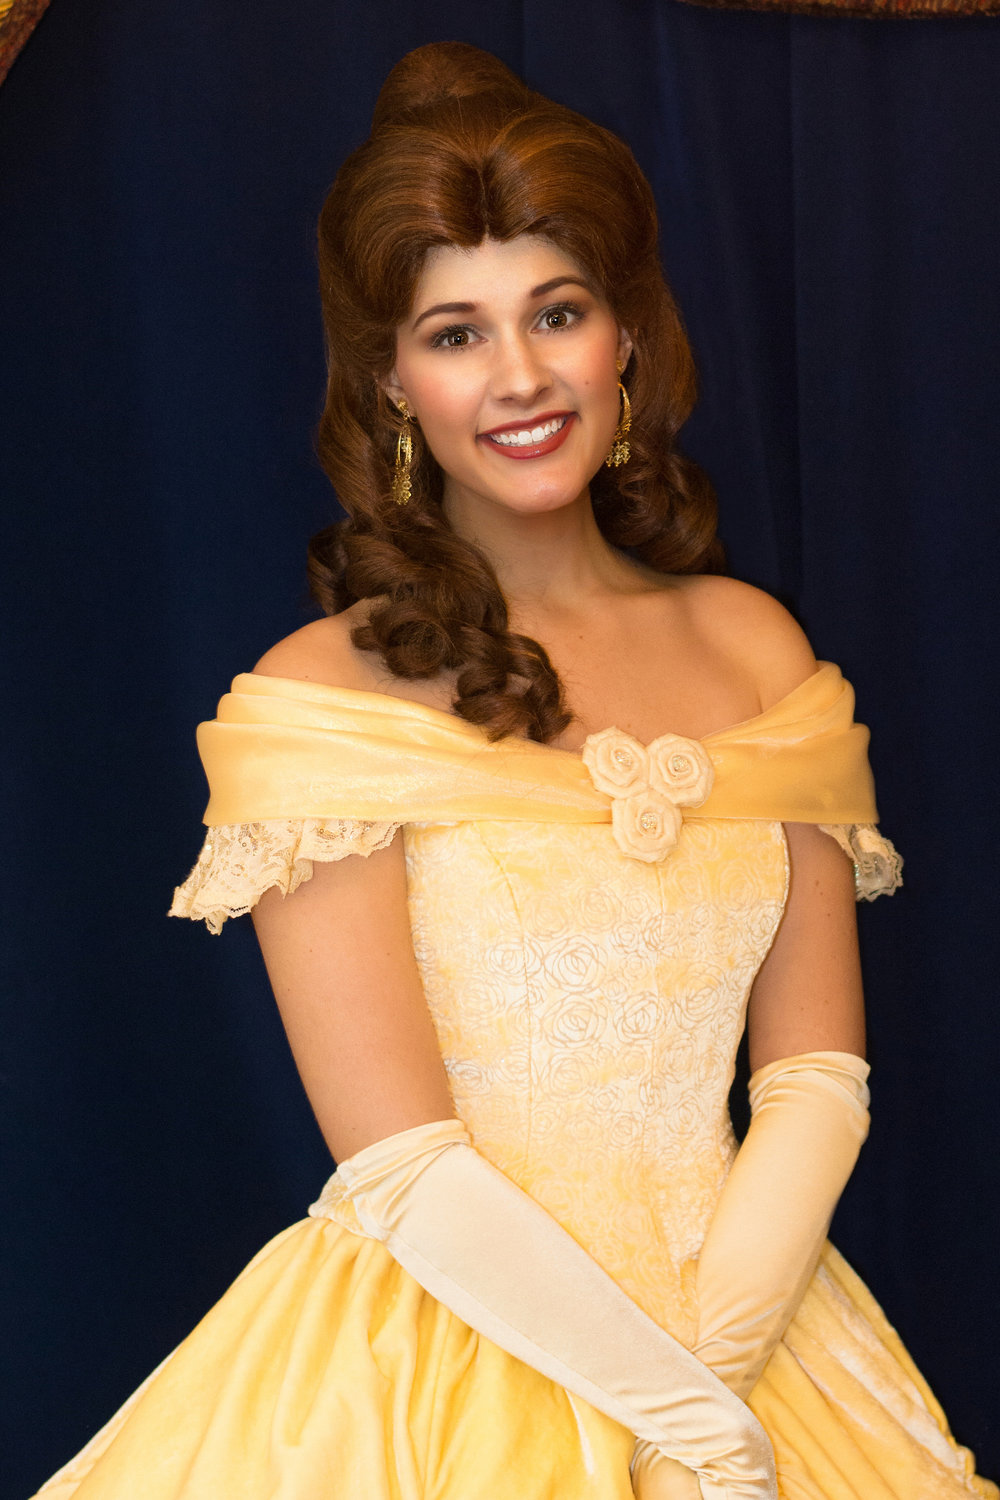 Belle (Beauty & the Beast)